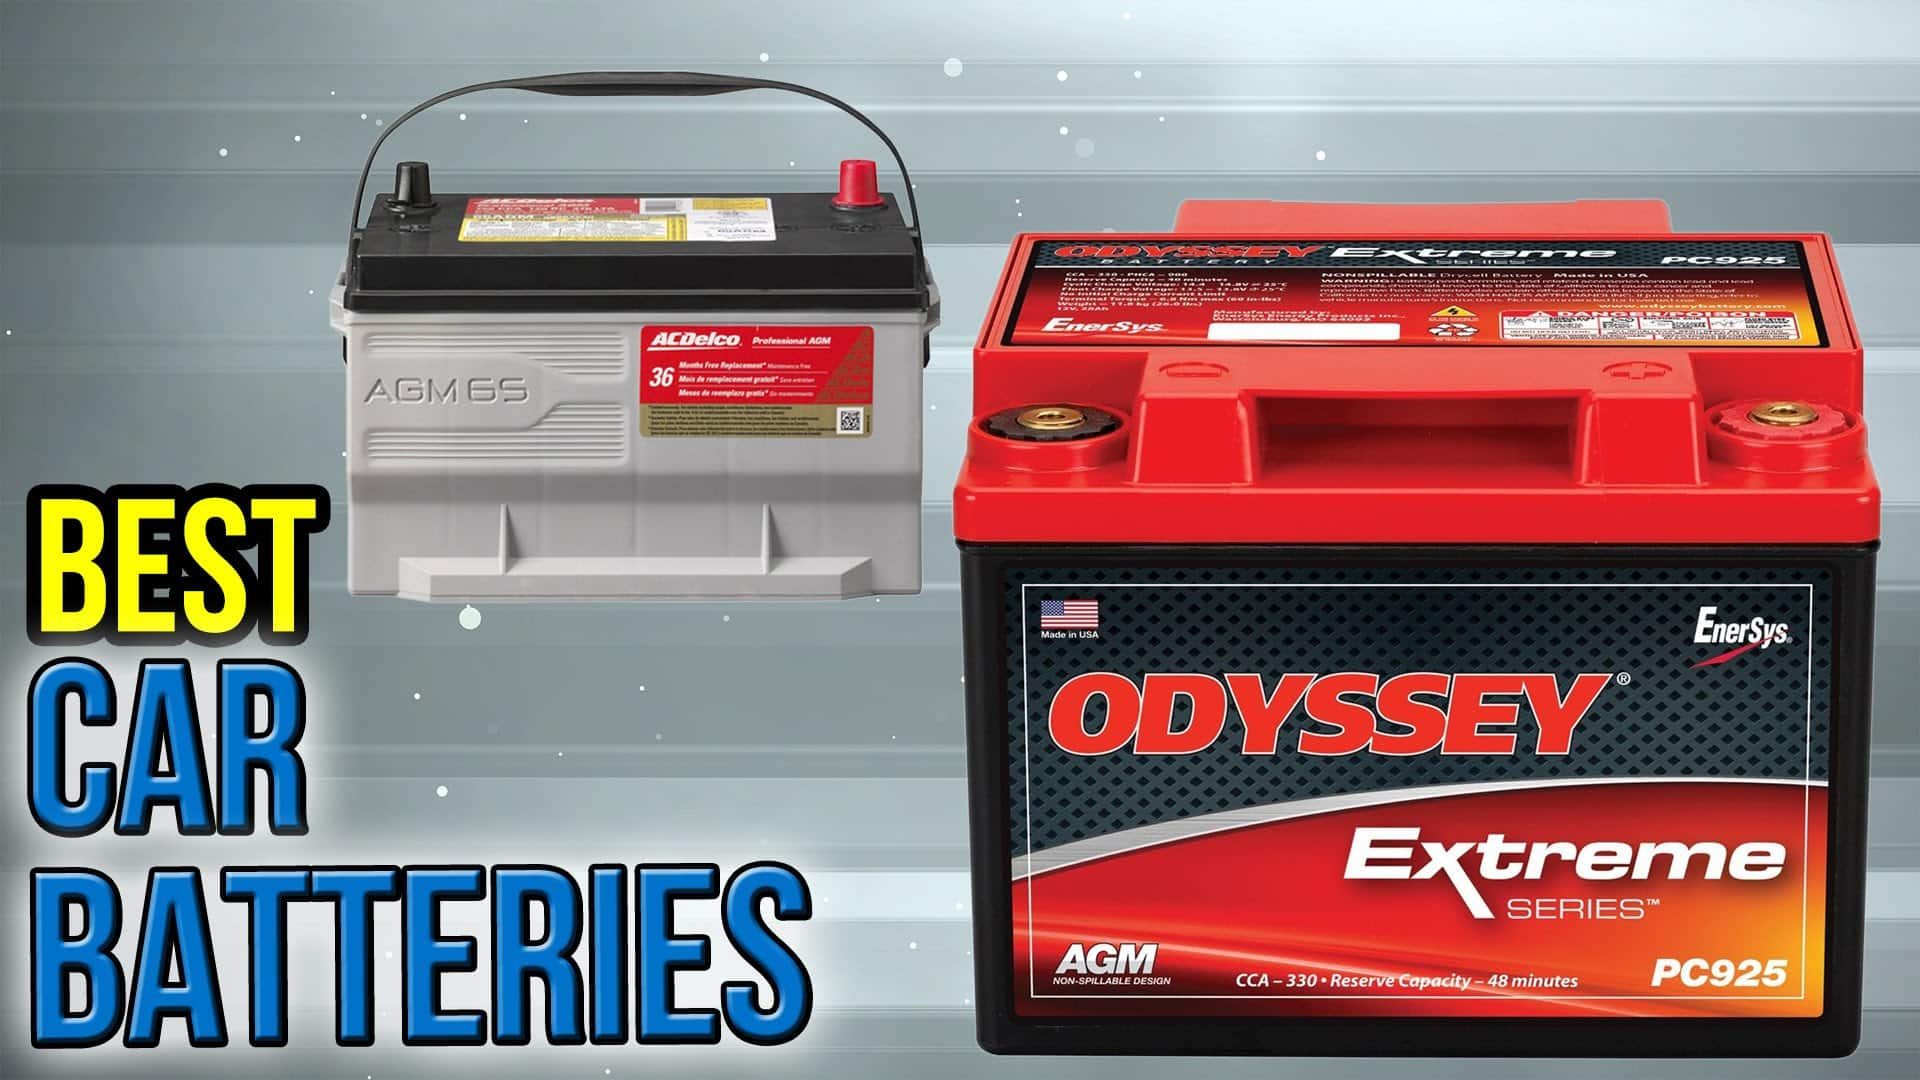 Odyssey High Performance Car Battery 229 95 See Deal